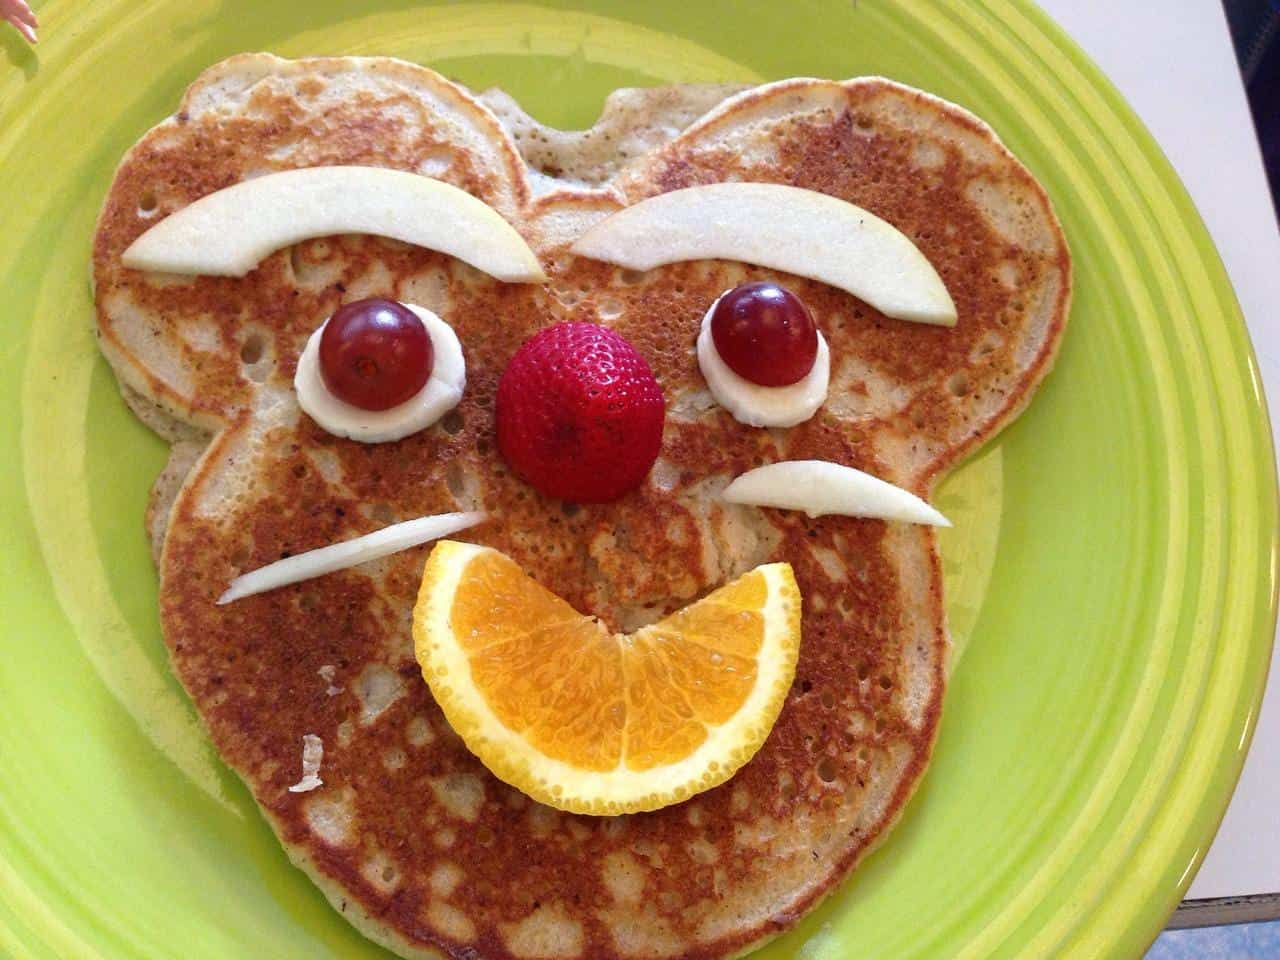 Pancake with grape eyes and orange mouth